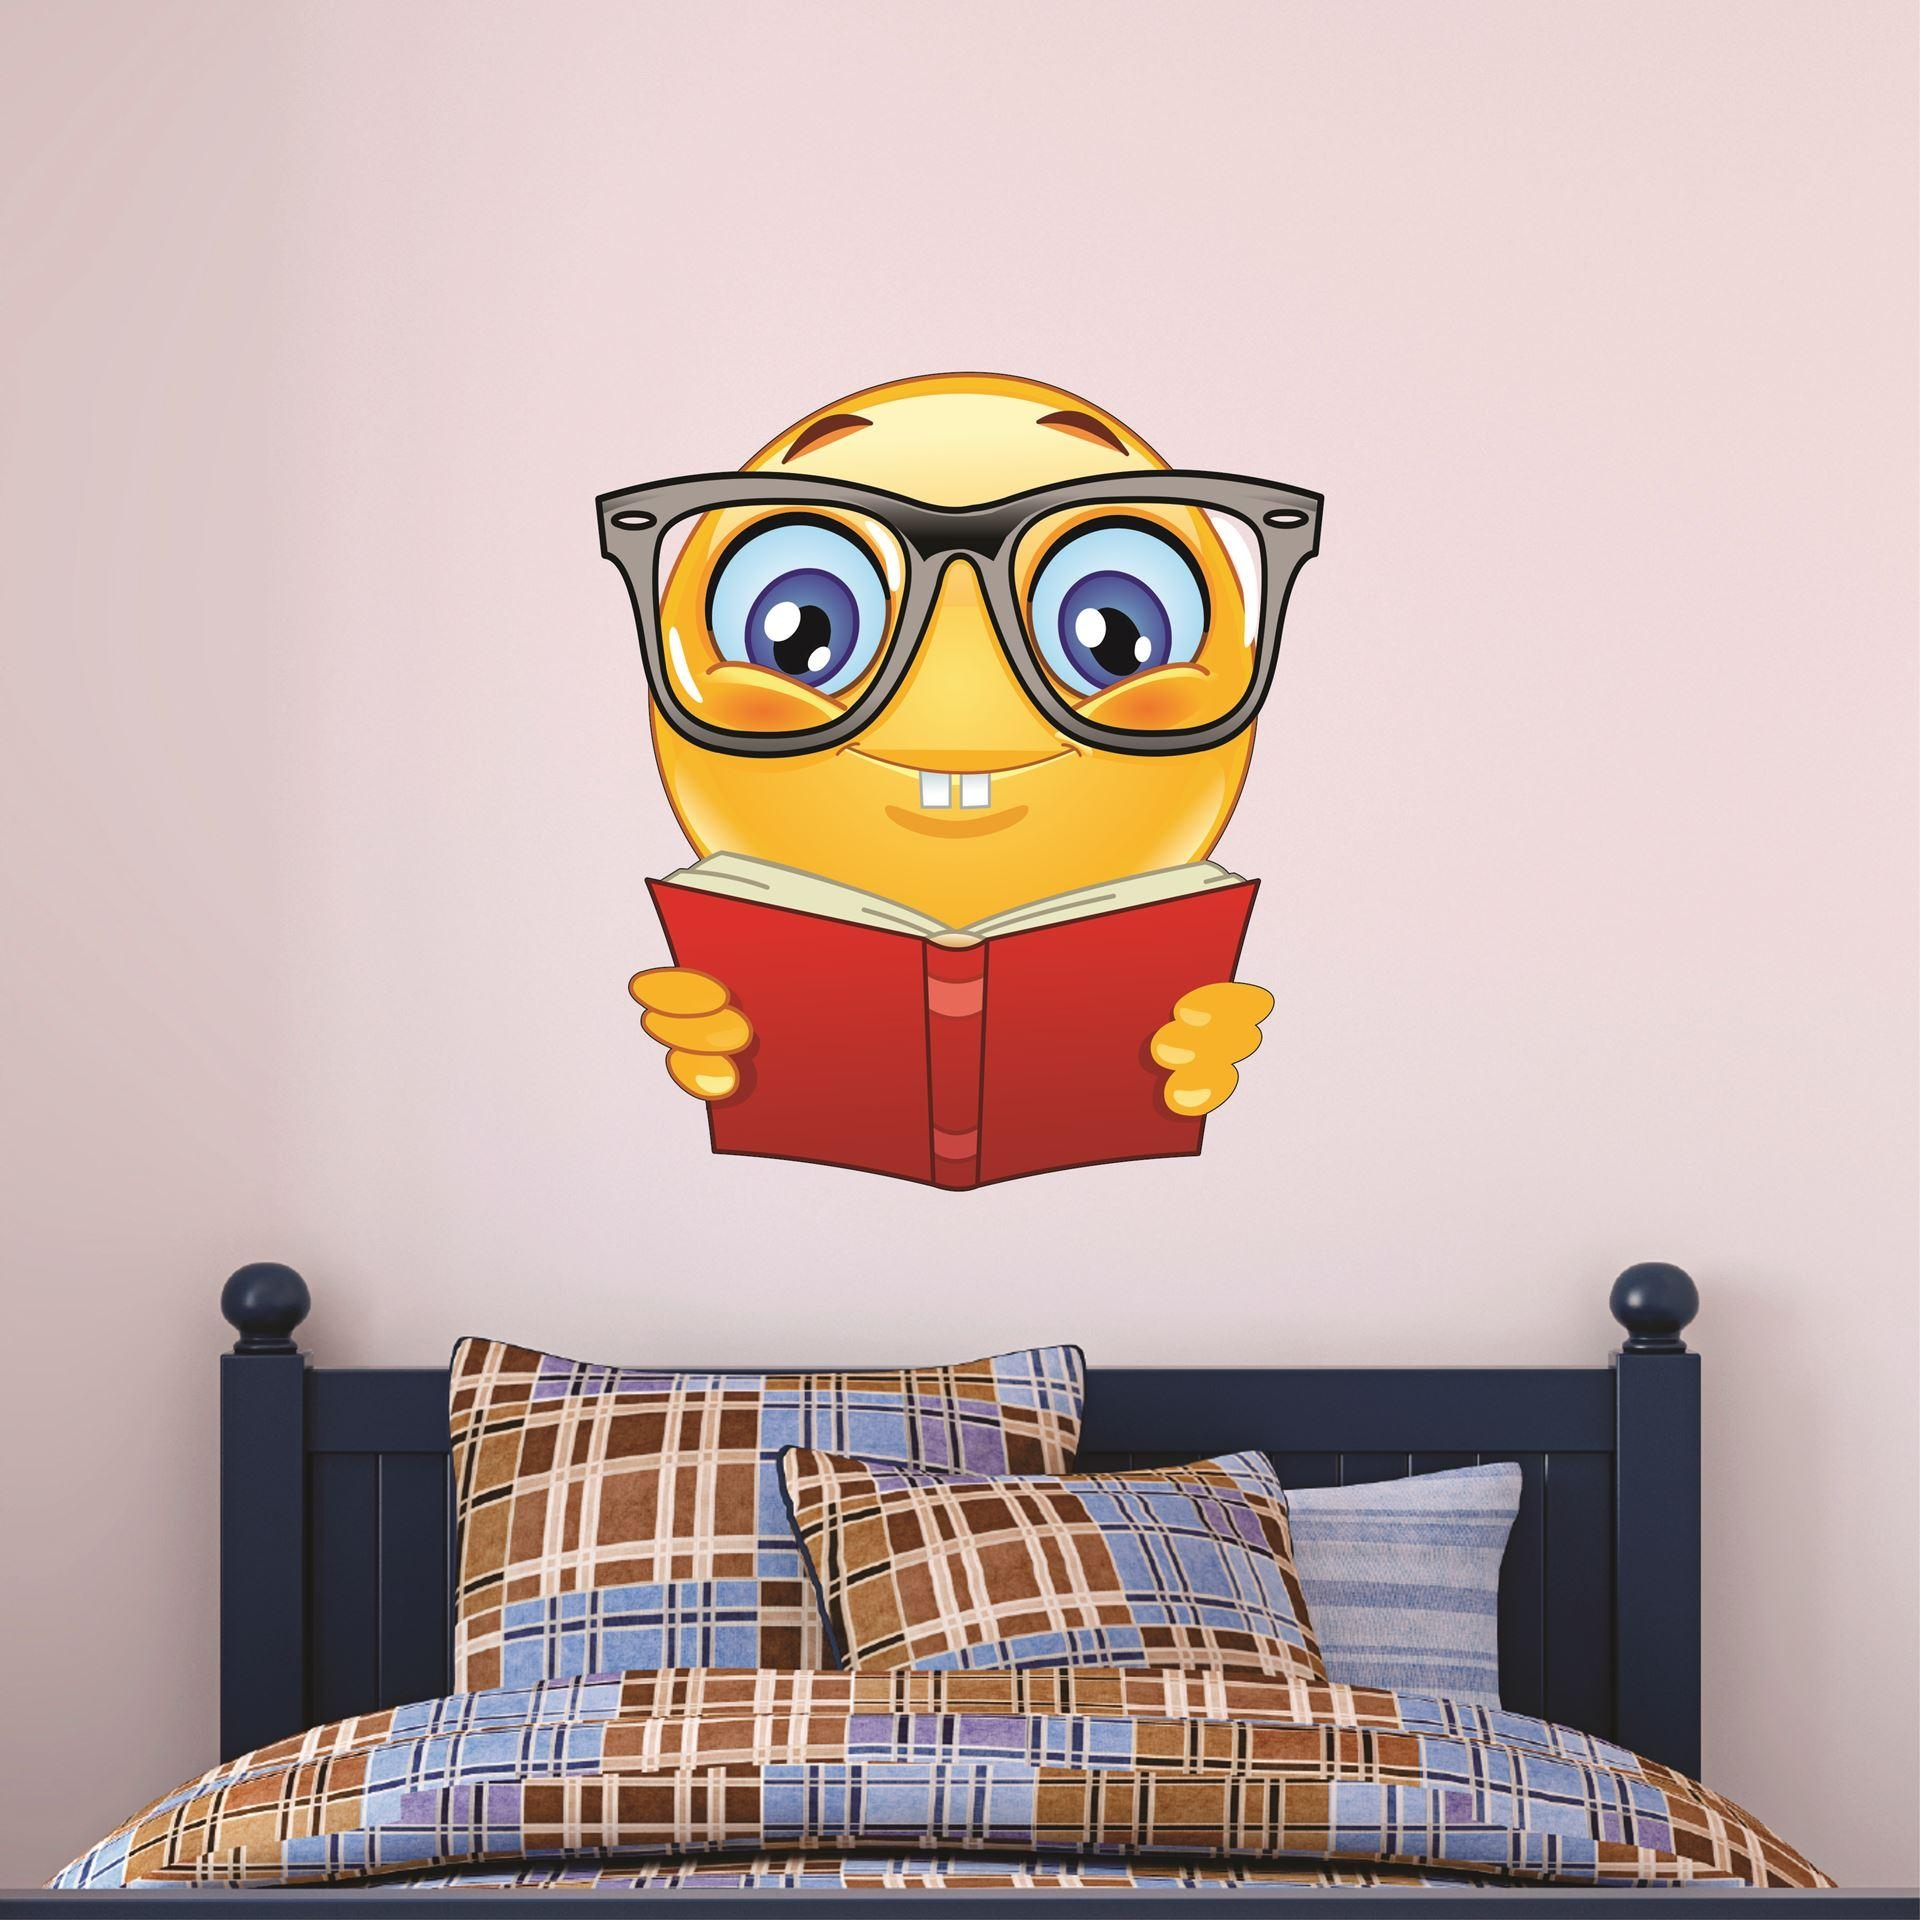 Custom 10+ Emoji Wall Art Inspiration Of Emoji Wall Art | Online With Regard To Emoji Wall Art (View 8 of 20)